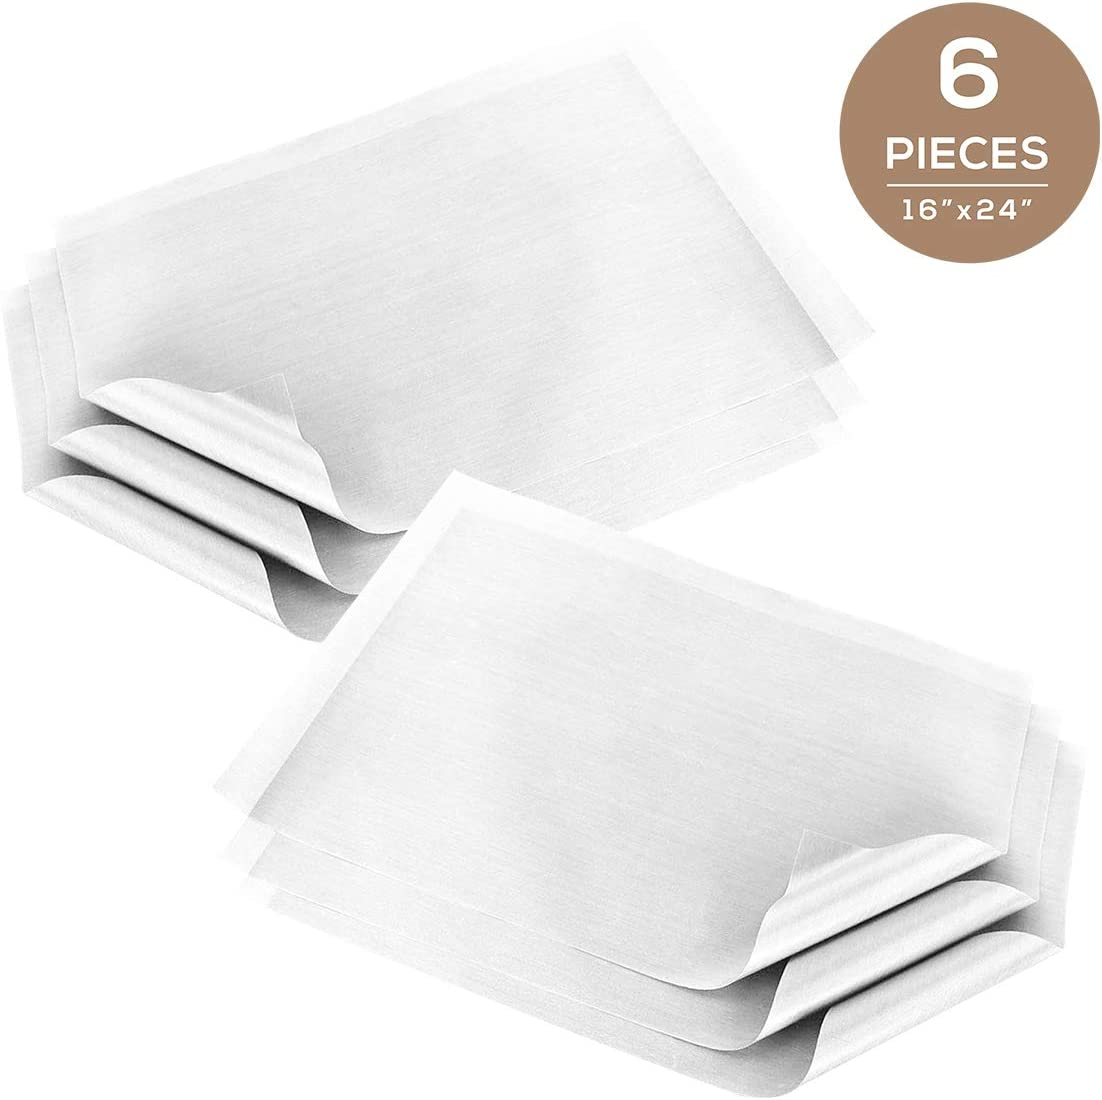 5 Pack Teflon Heat Press with Thickness of 0.11mm , 16x24 Light Brown